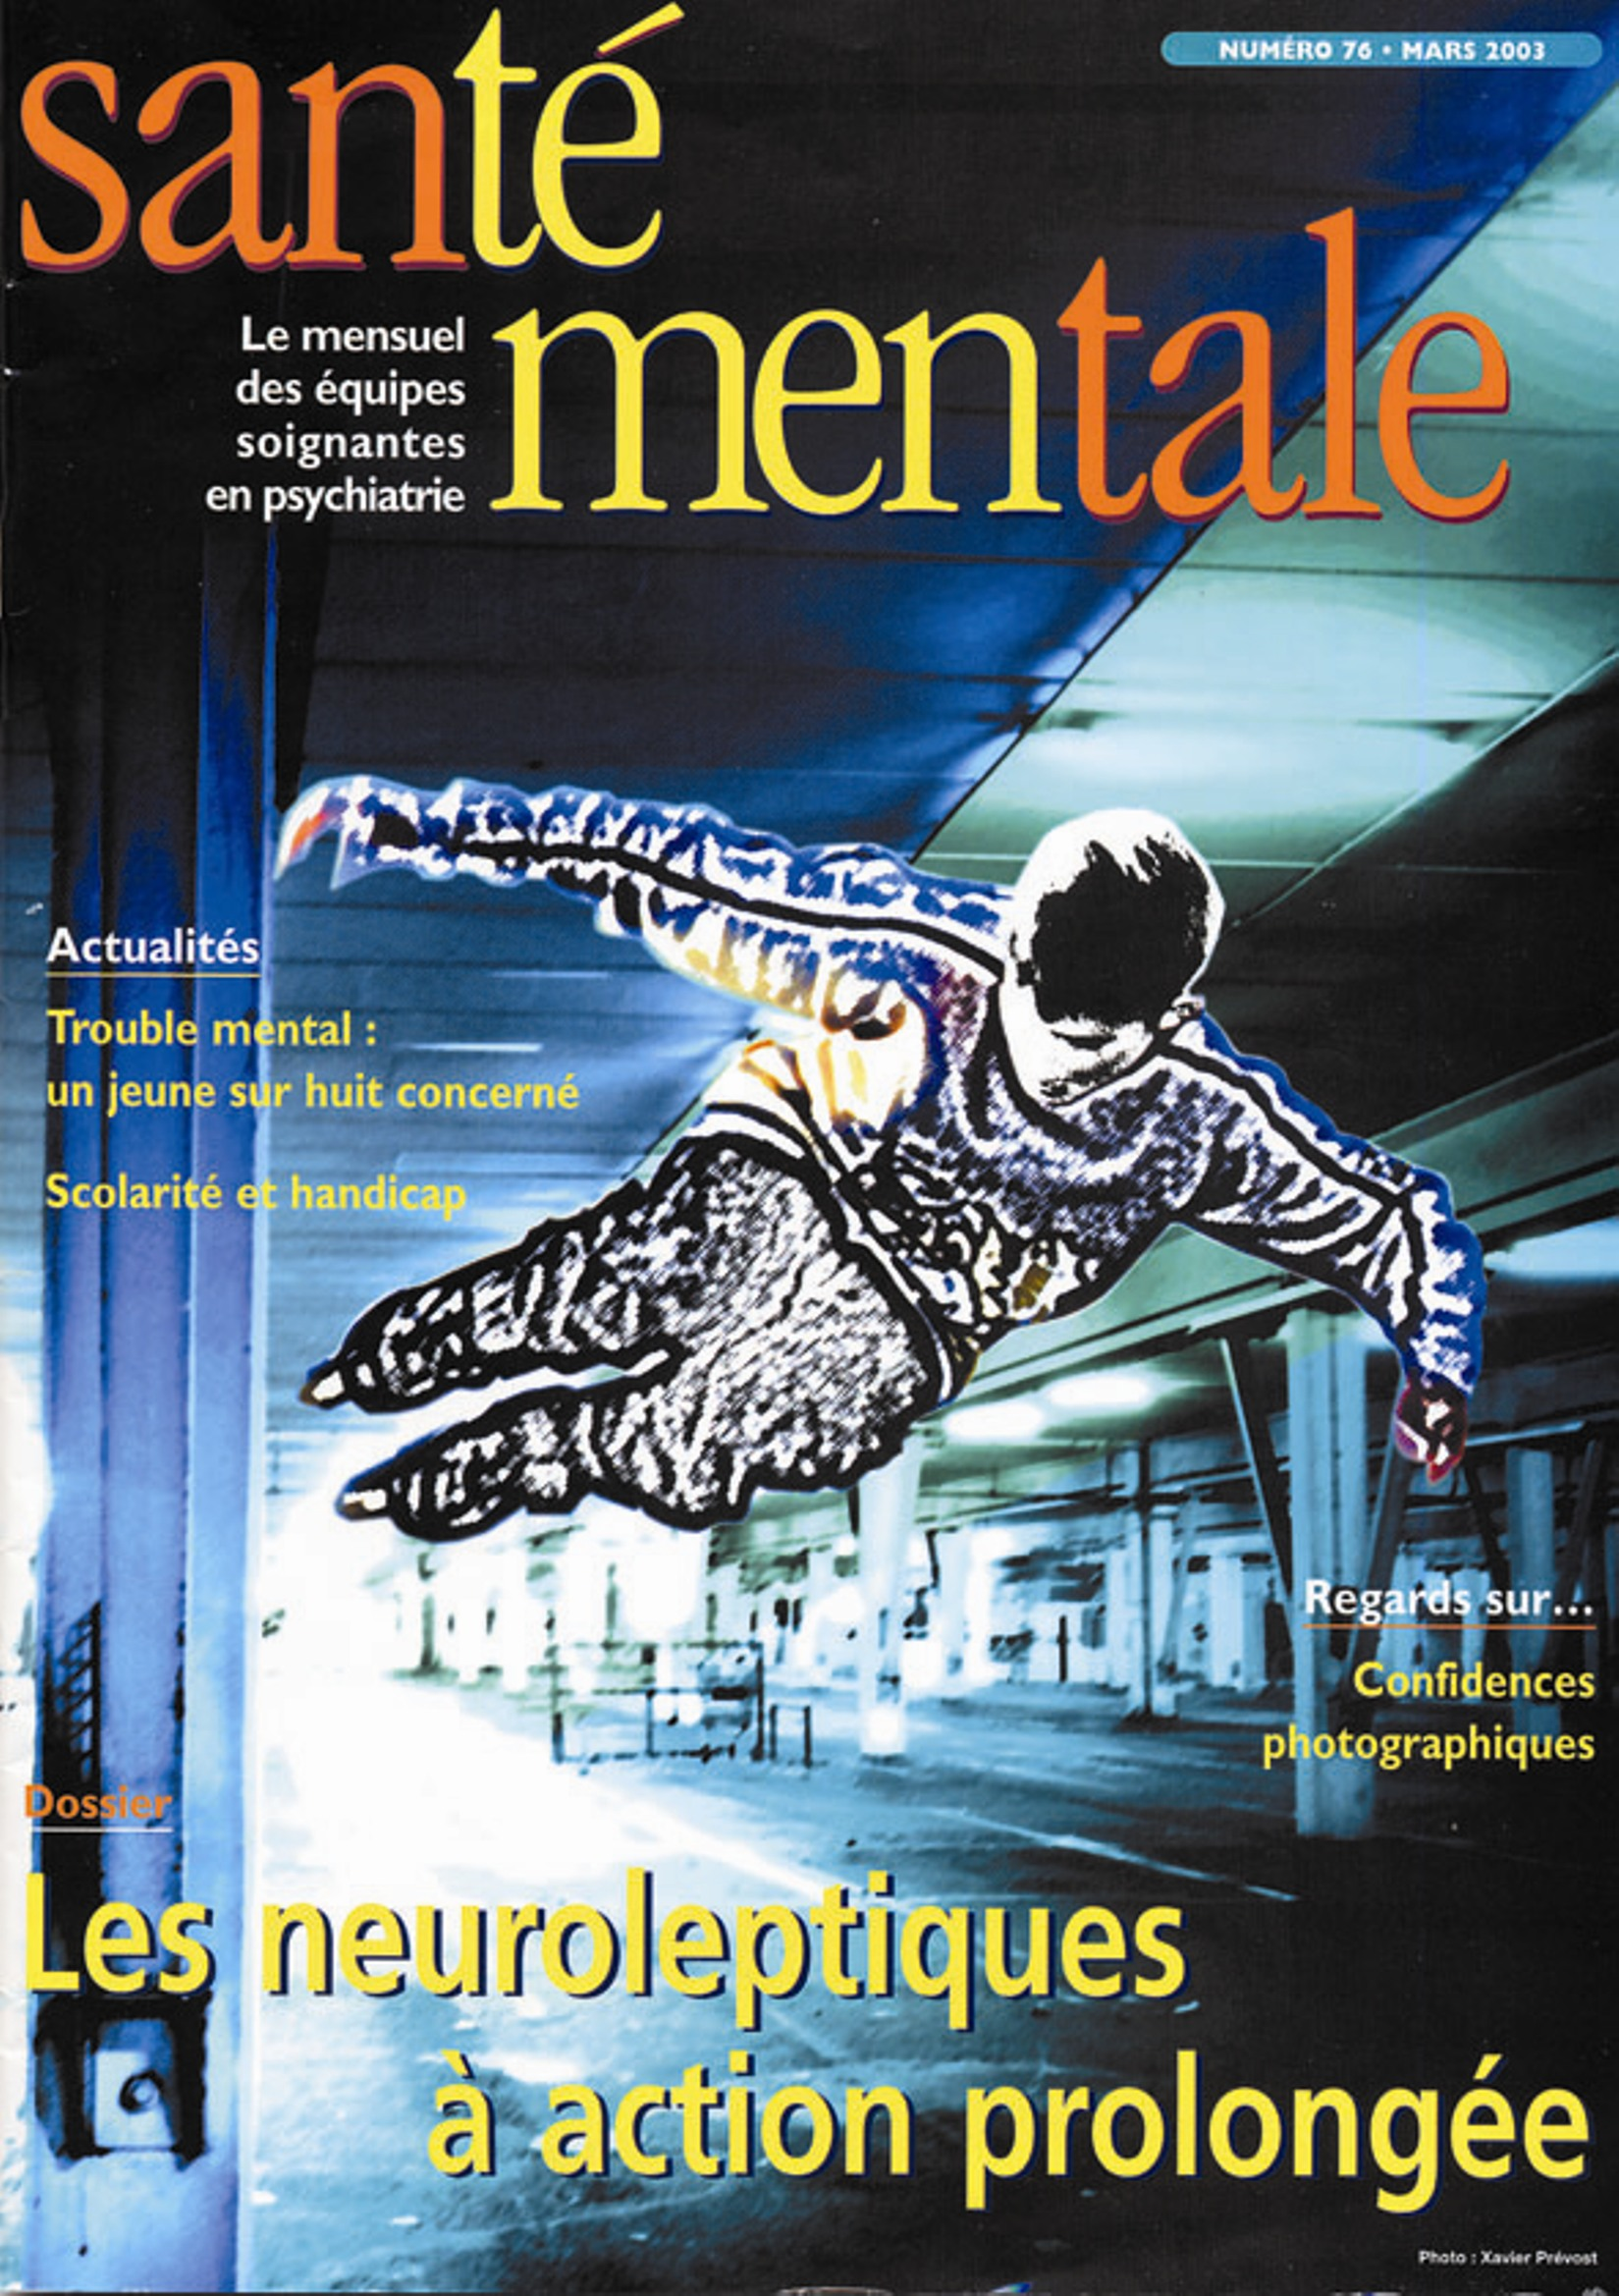 Couverture N°76 mars 2003